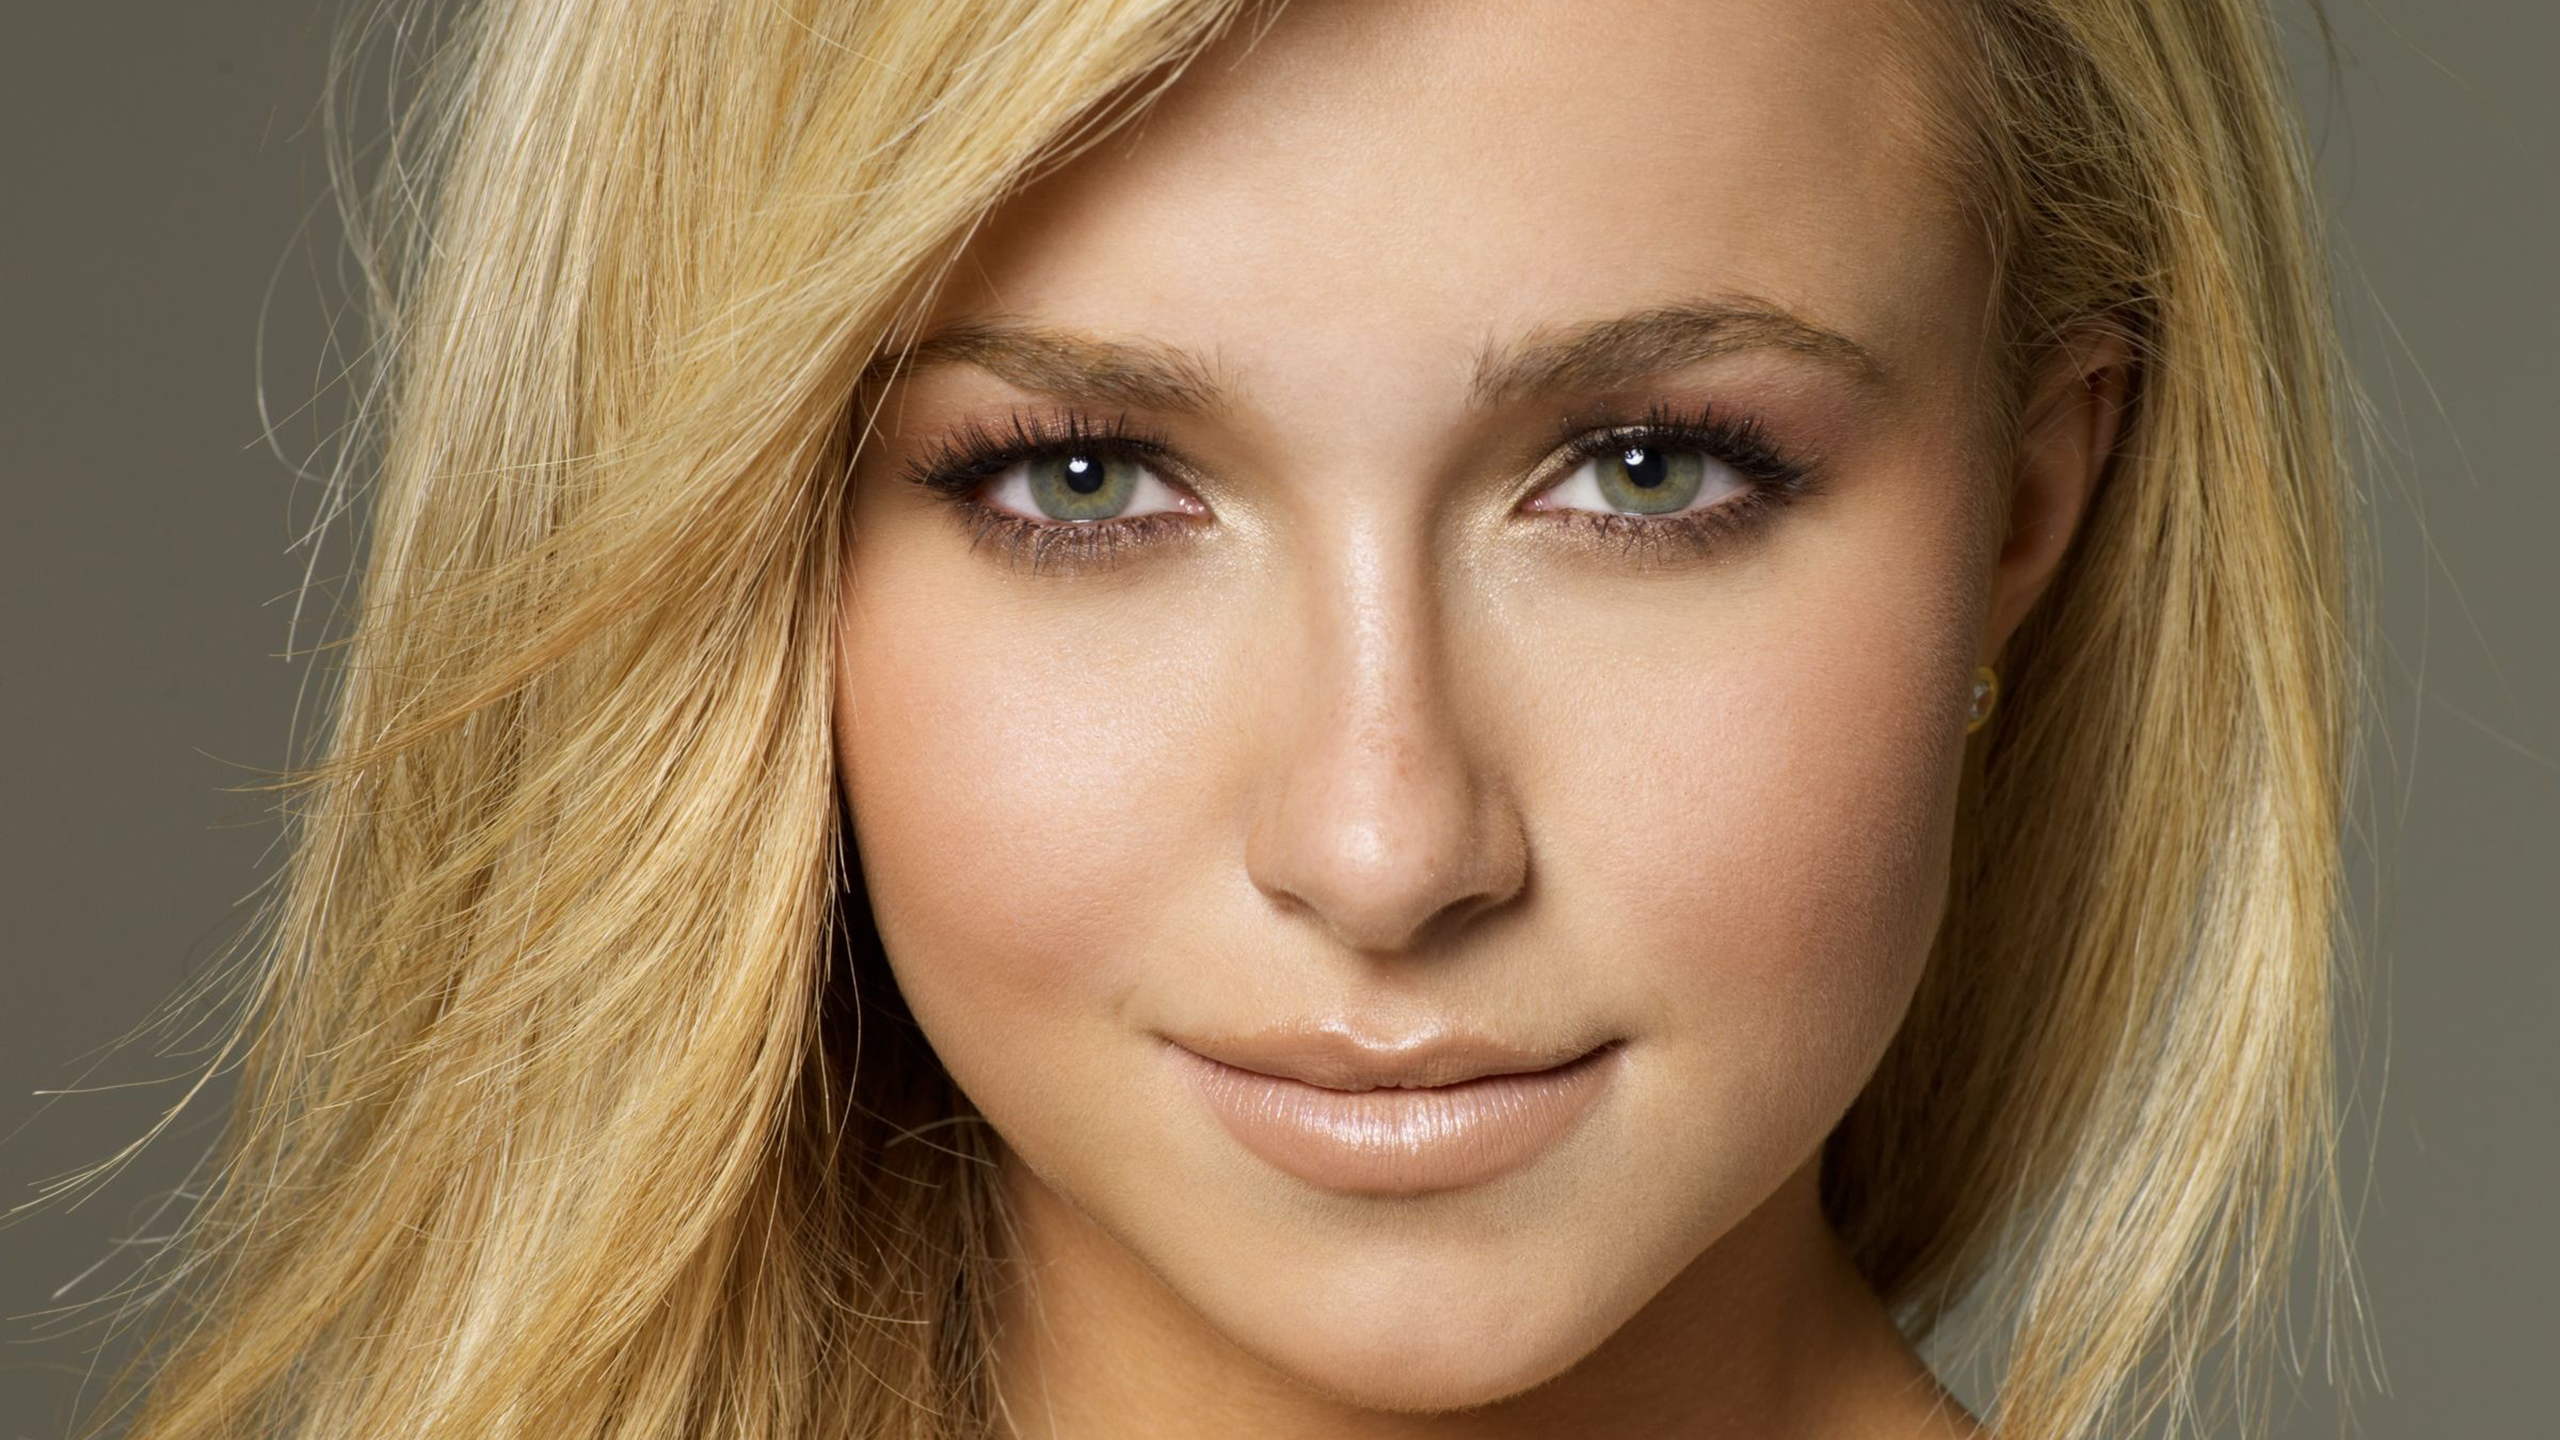 Hayden Panettiere Wallpapers Images Photos Pictures